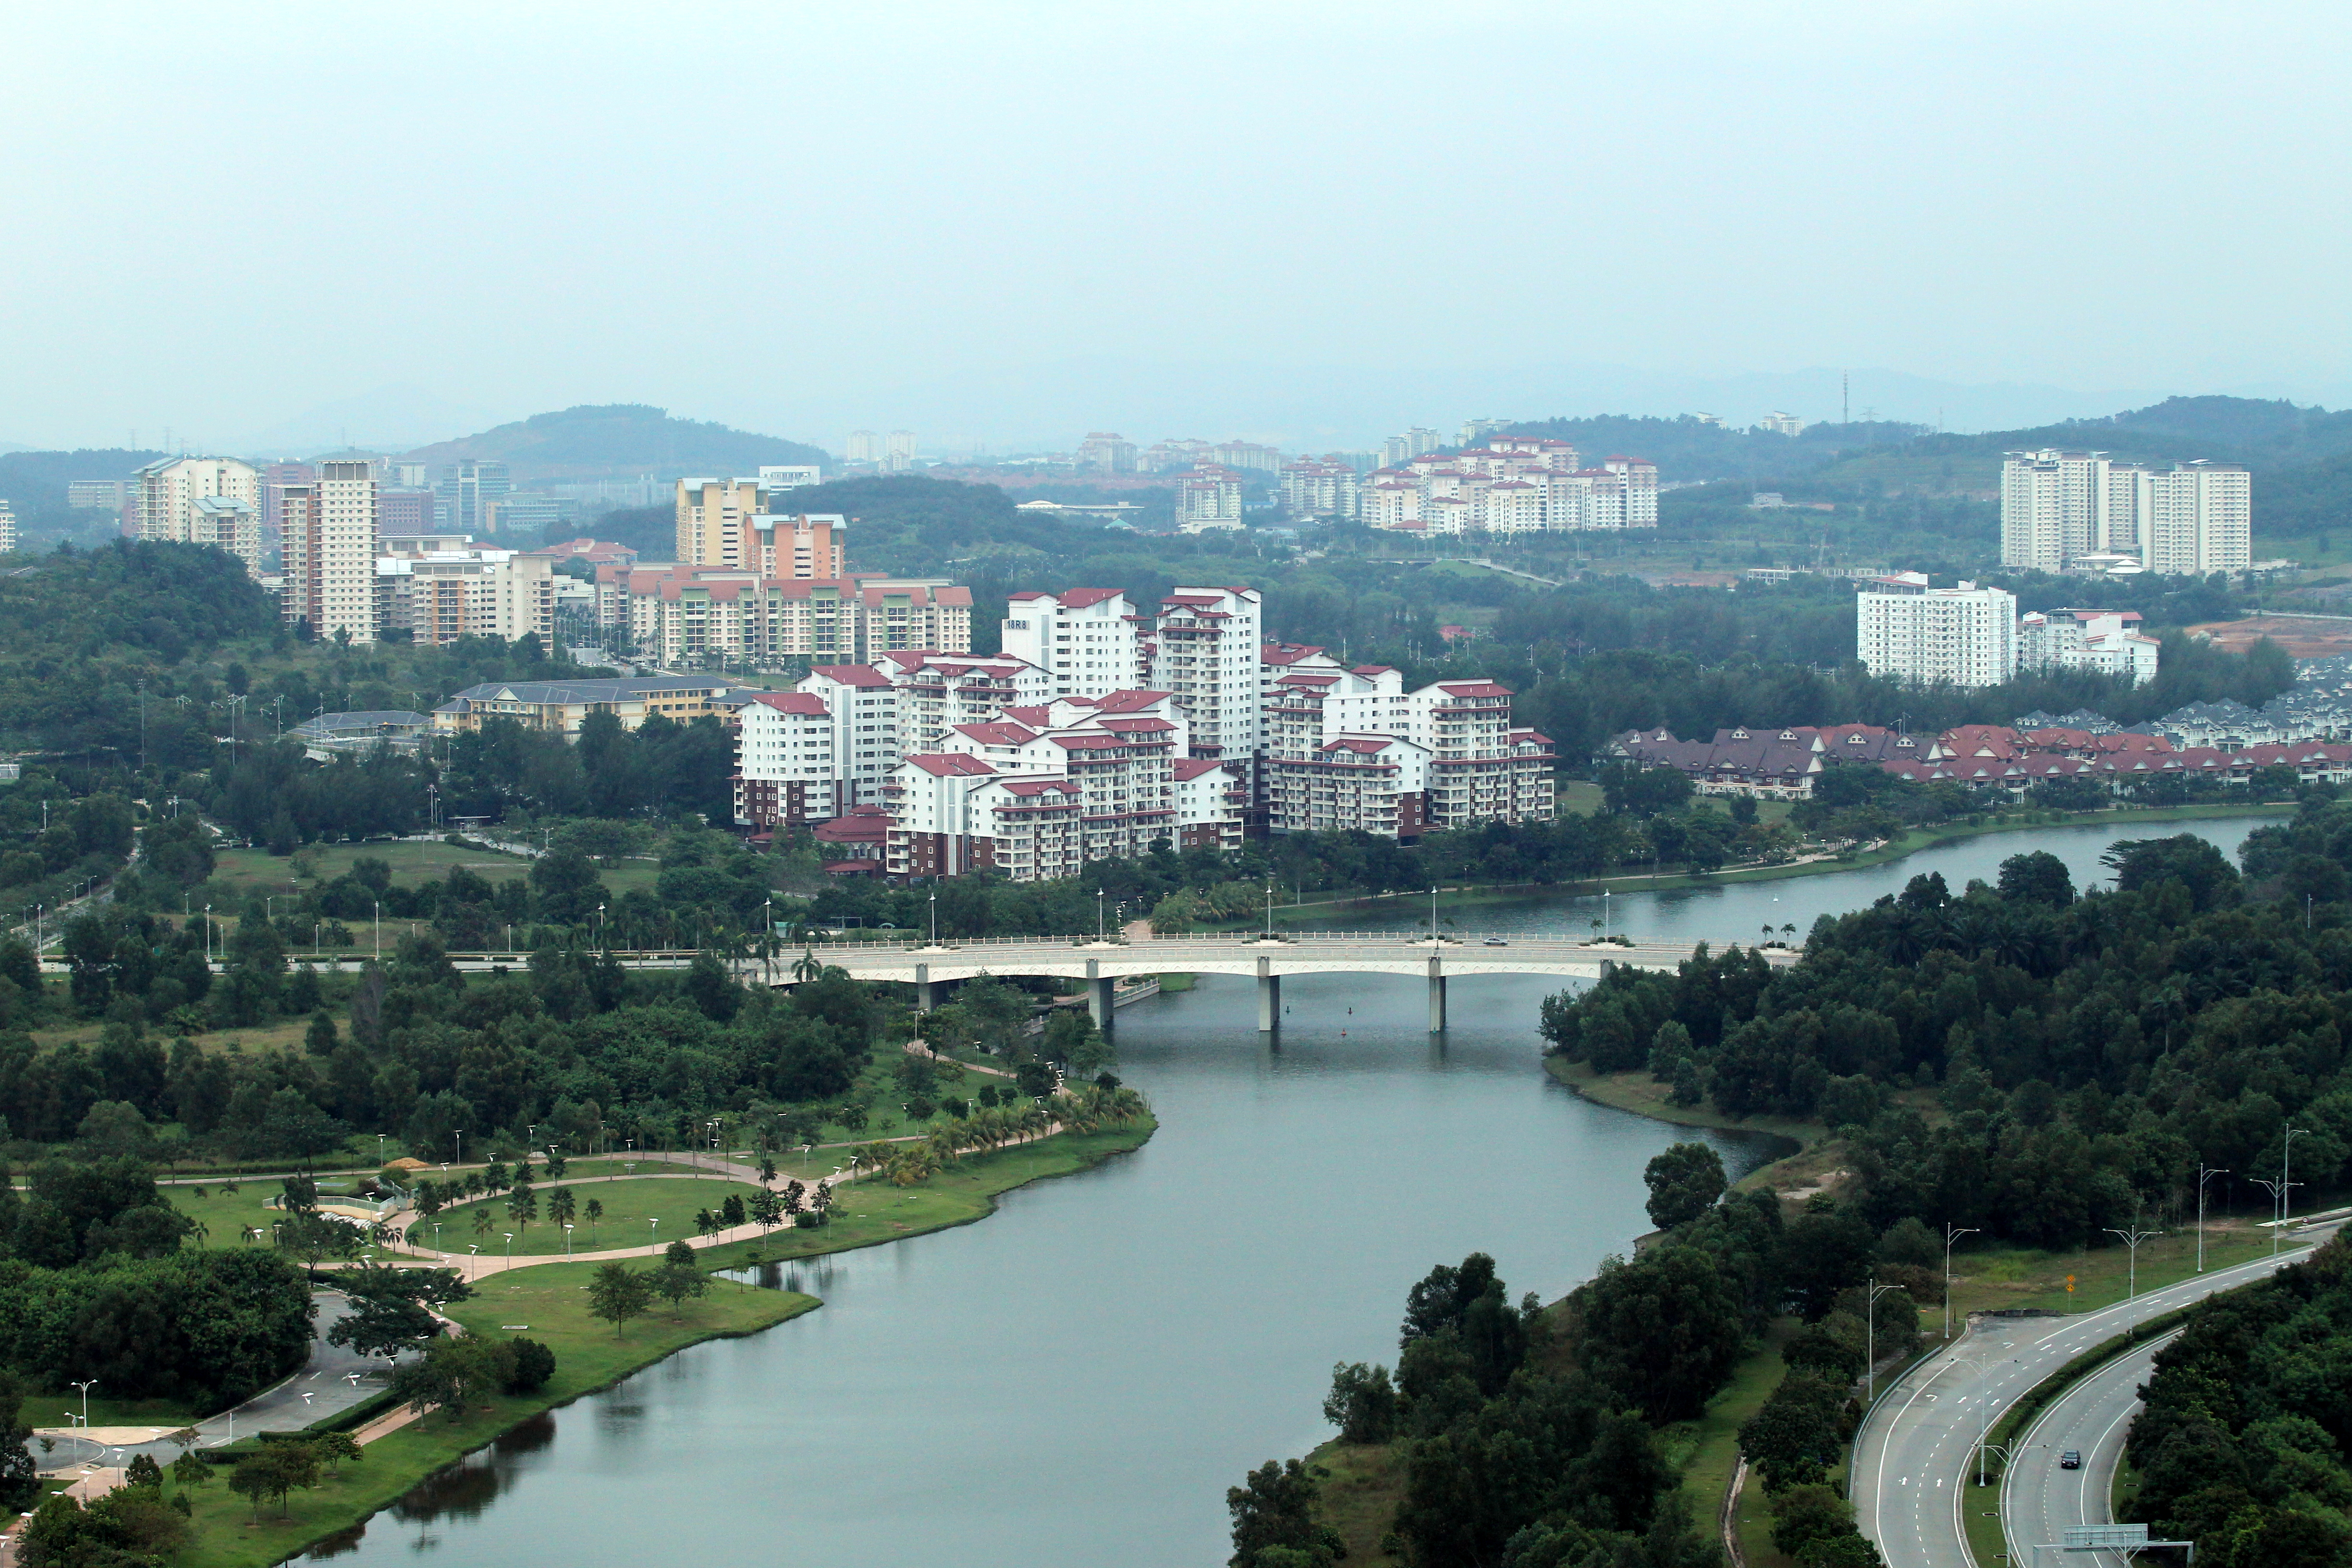 Property For Sales Or Rent In Putrajaya, Malaysia